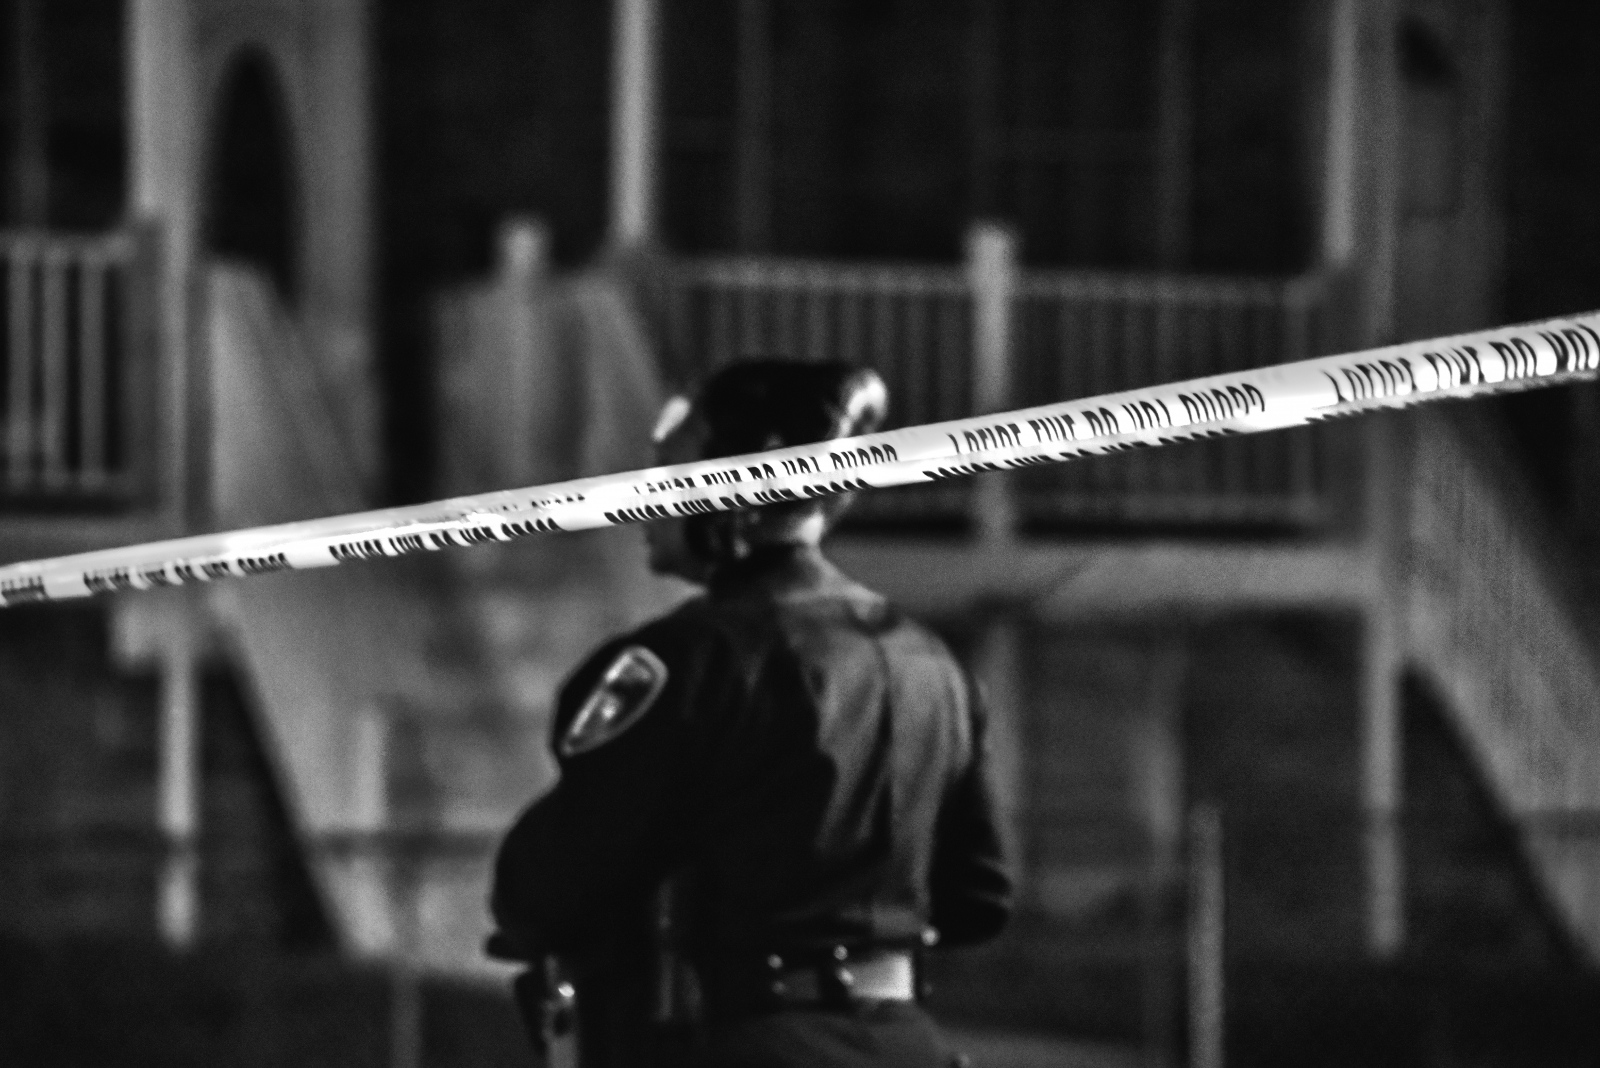 A Baltimore City police officer at a crime scene in October, 2018. The year ended with over 300 homicides.